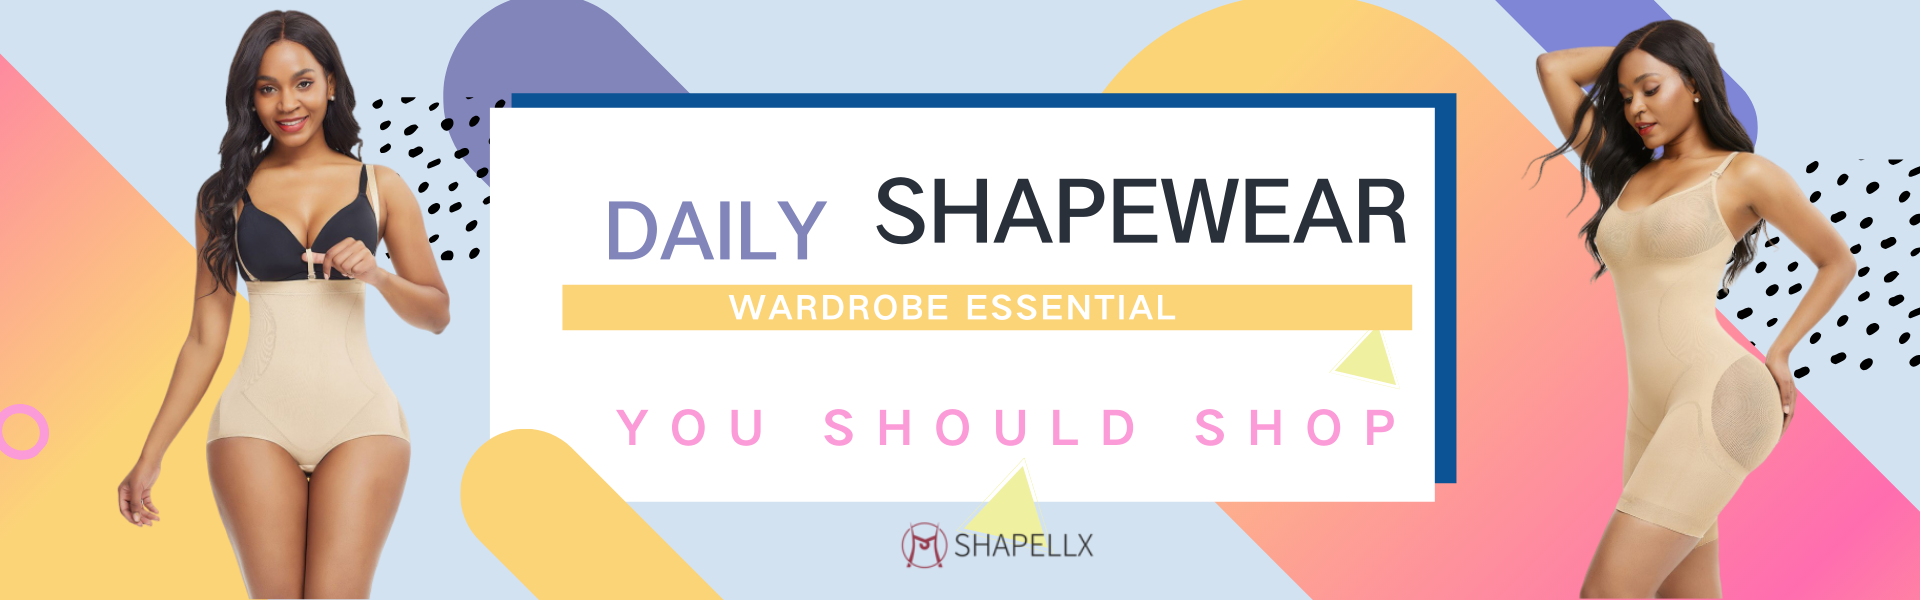 Daily Shapewear Essentials in Your Wardrobe